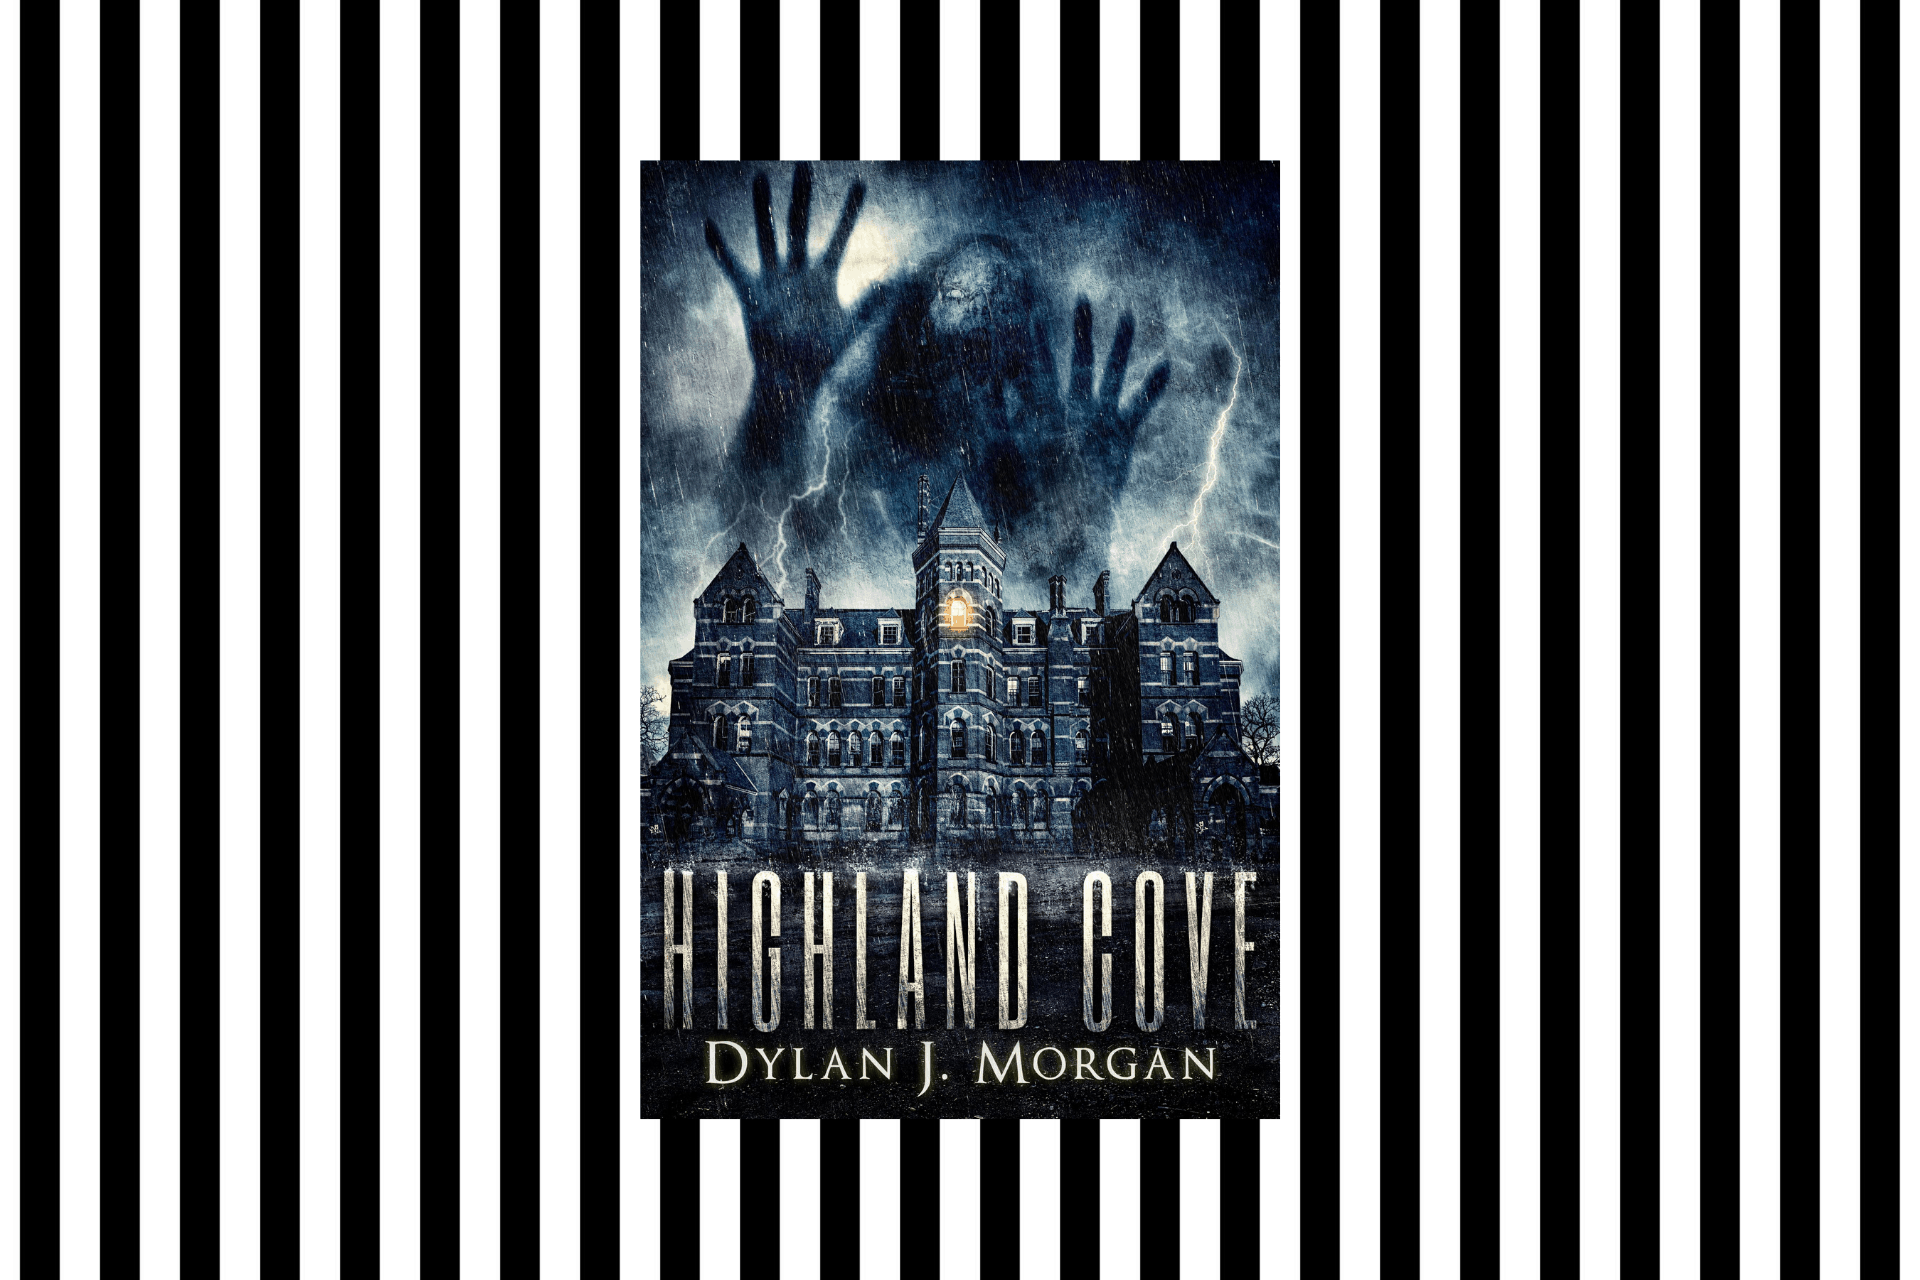 Highland Cove, by Dylan J Morgan